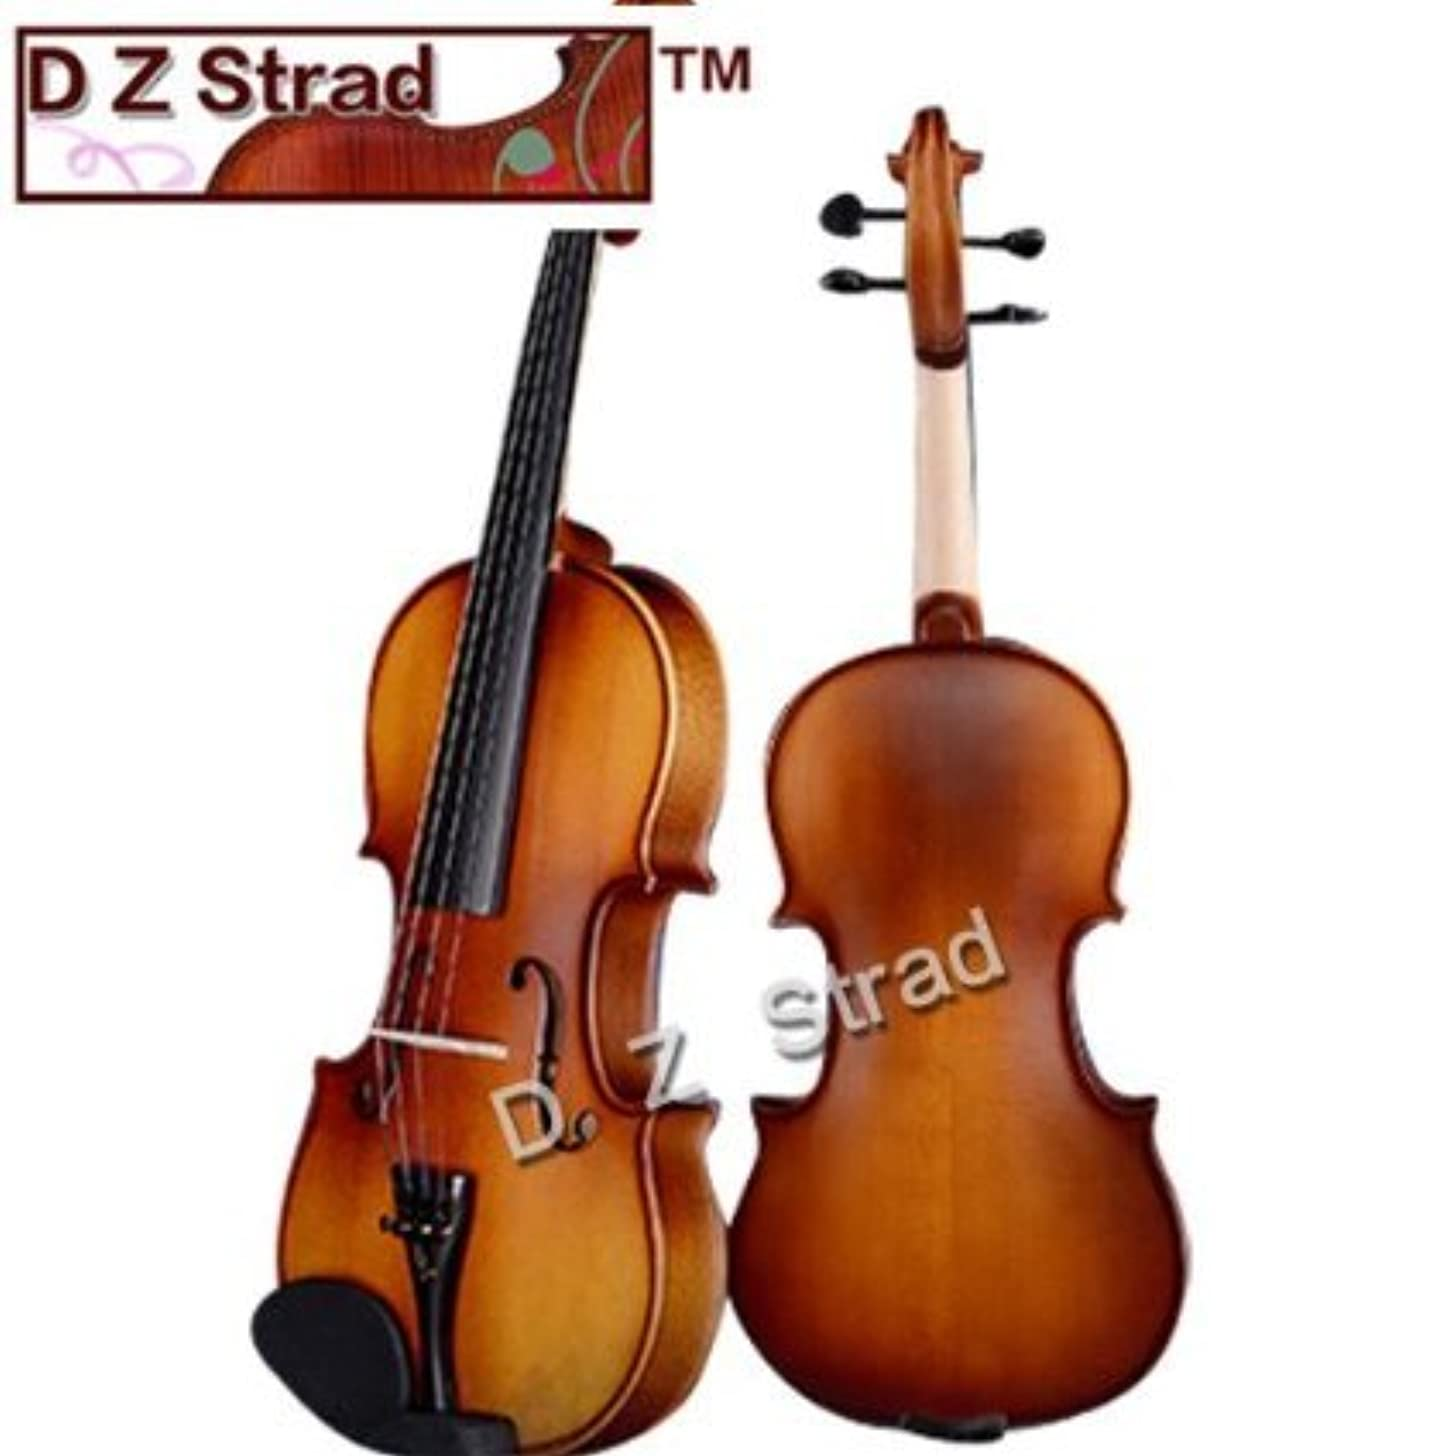 D Z Strad Violin Model 100 with Solid Wood Size 1/4 Violin with Case, Bow, and Rosin (1/4-Size)